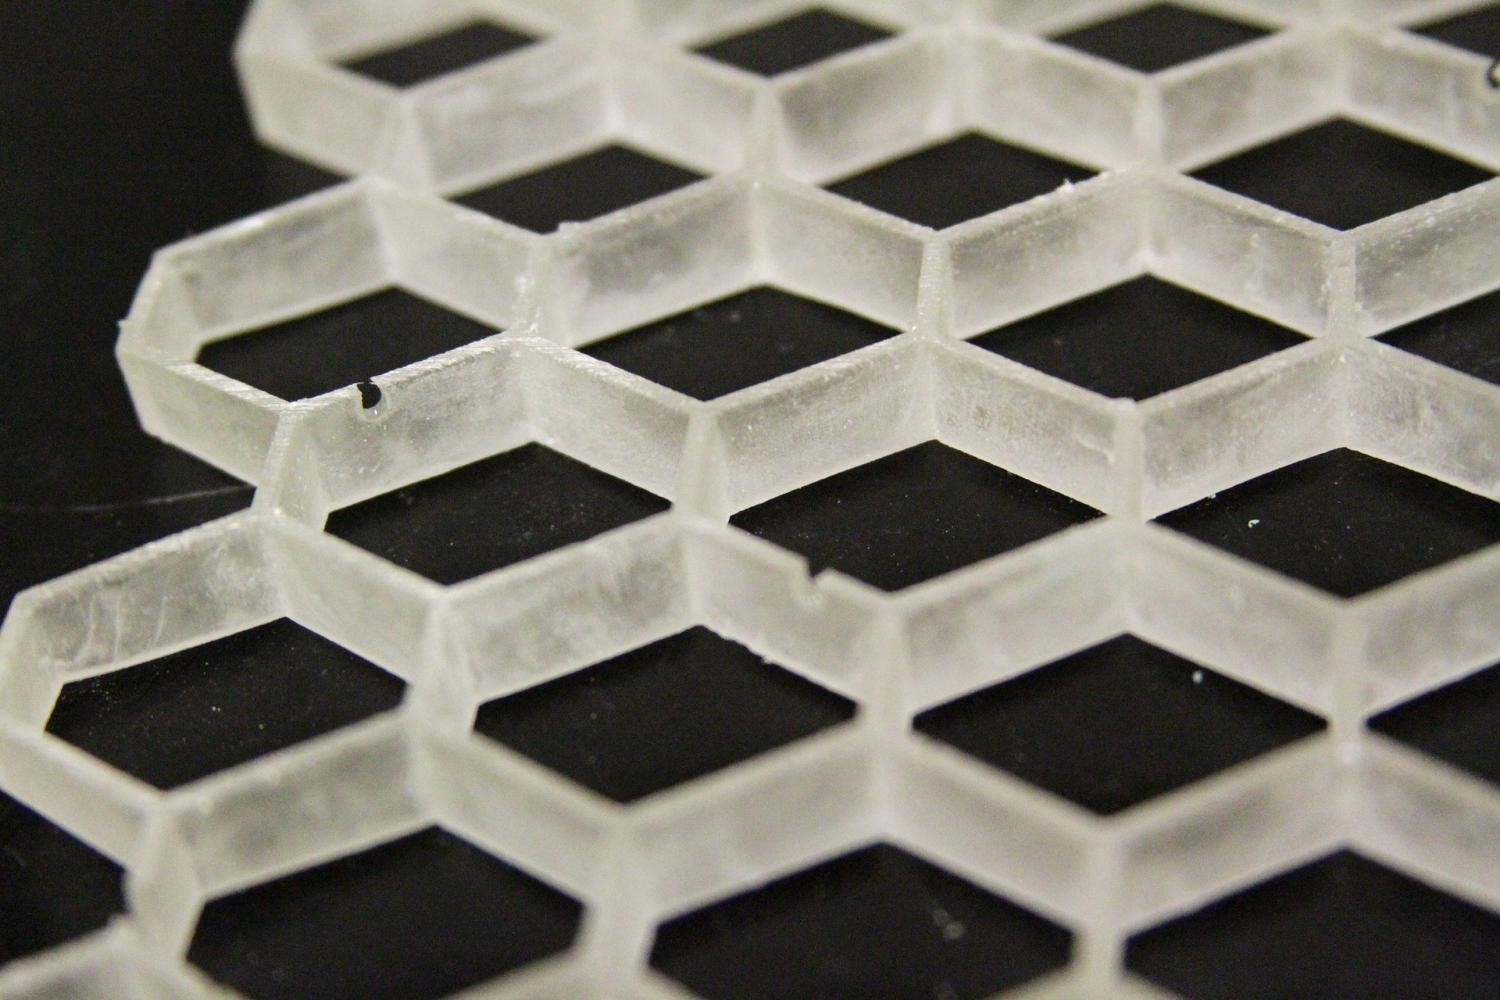 'Programmable materials' showing future potential for industry